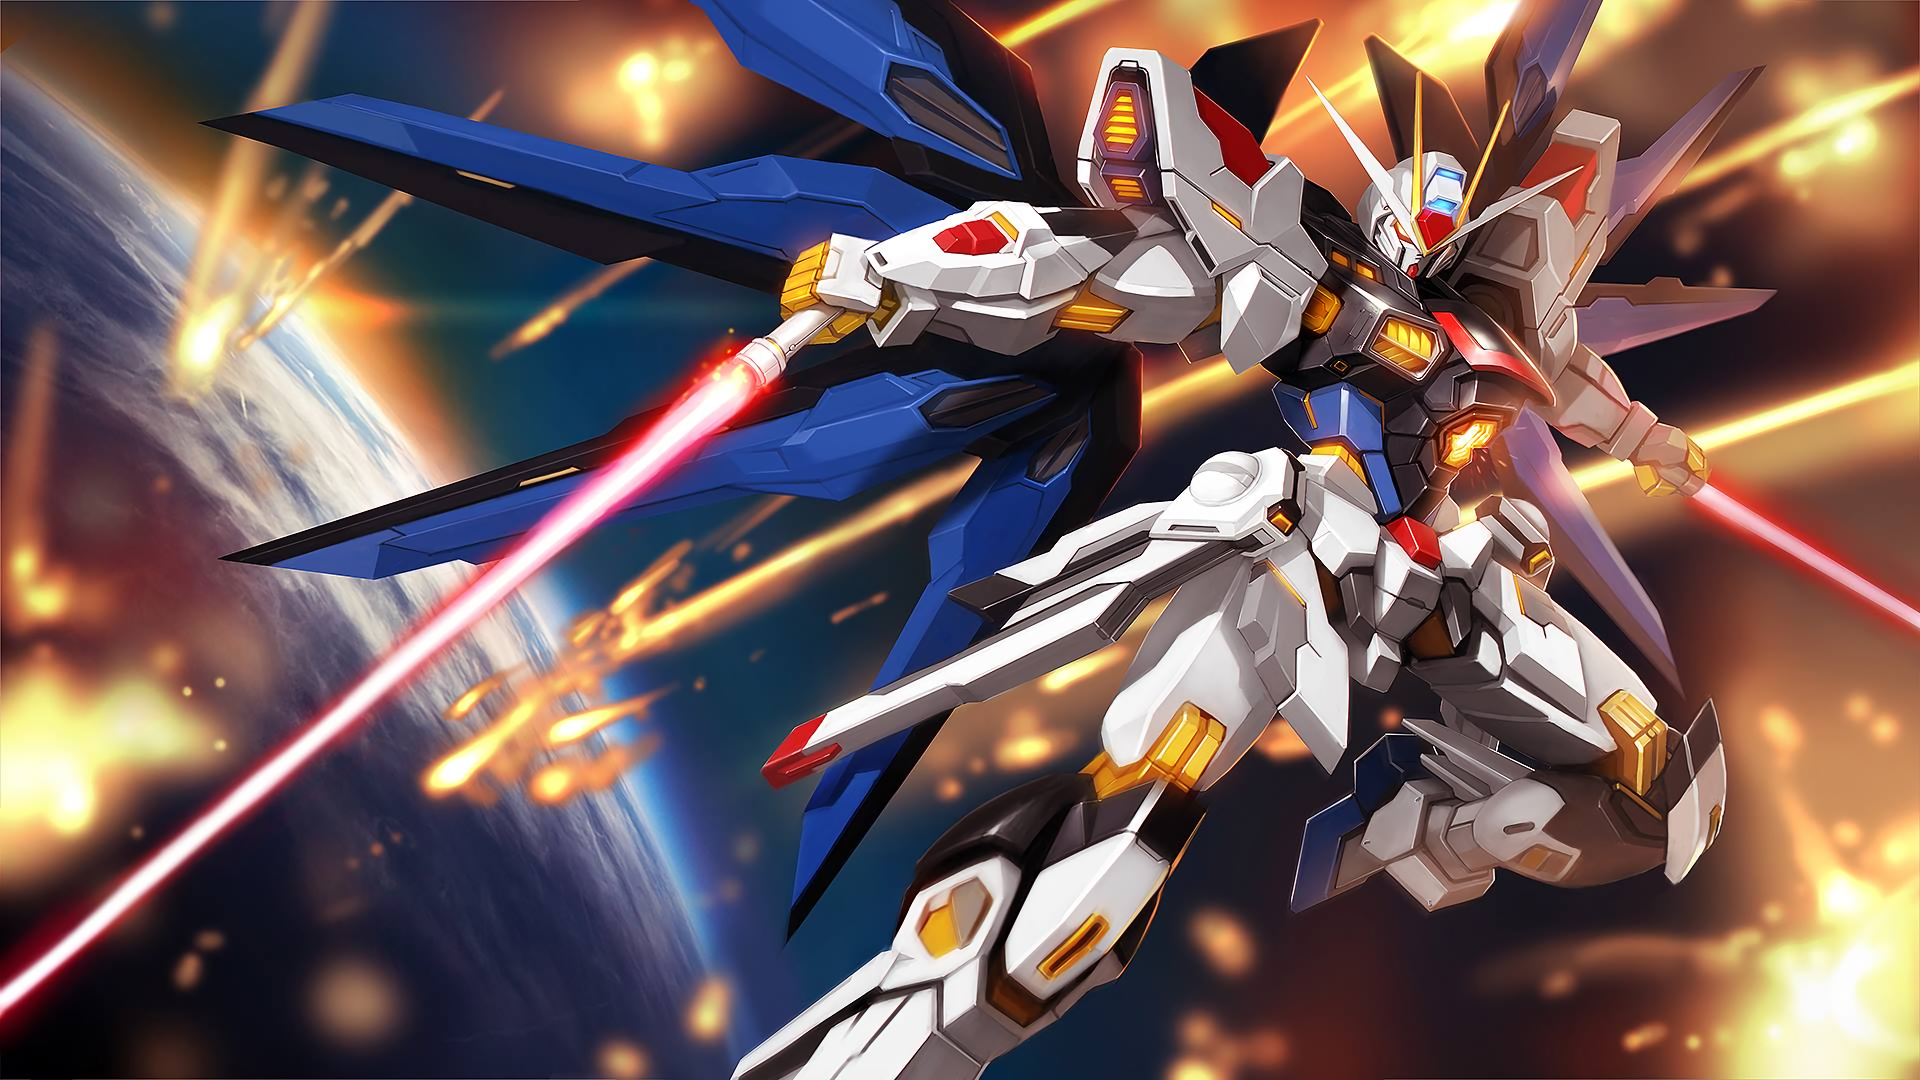 Mobile Suit Gundam Seed Destiny Computer Wallpapers 1920x1080